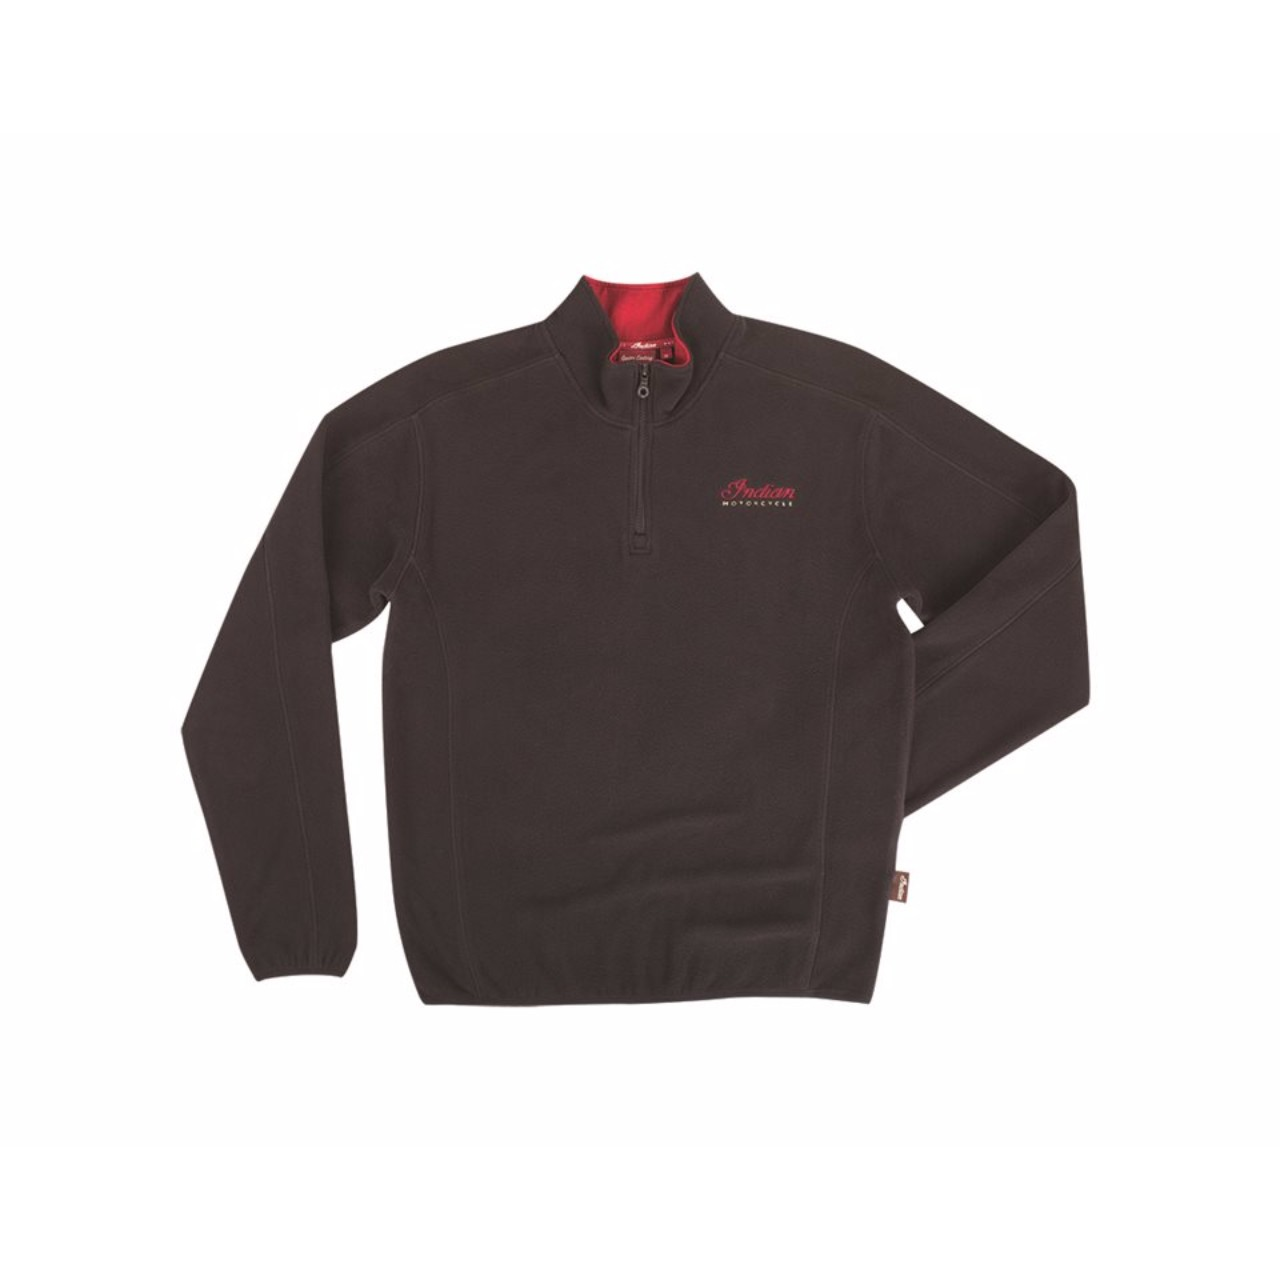 INDIAN_MEN'S_QUARTER_ZIP_FLEECE_BLACK_1